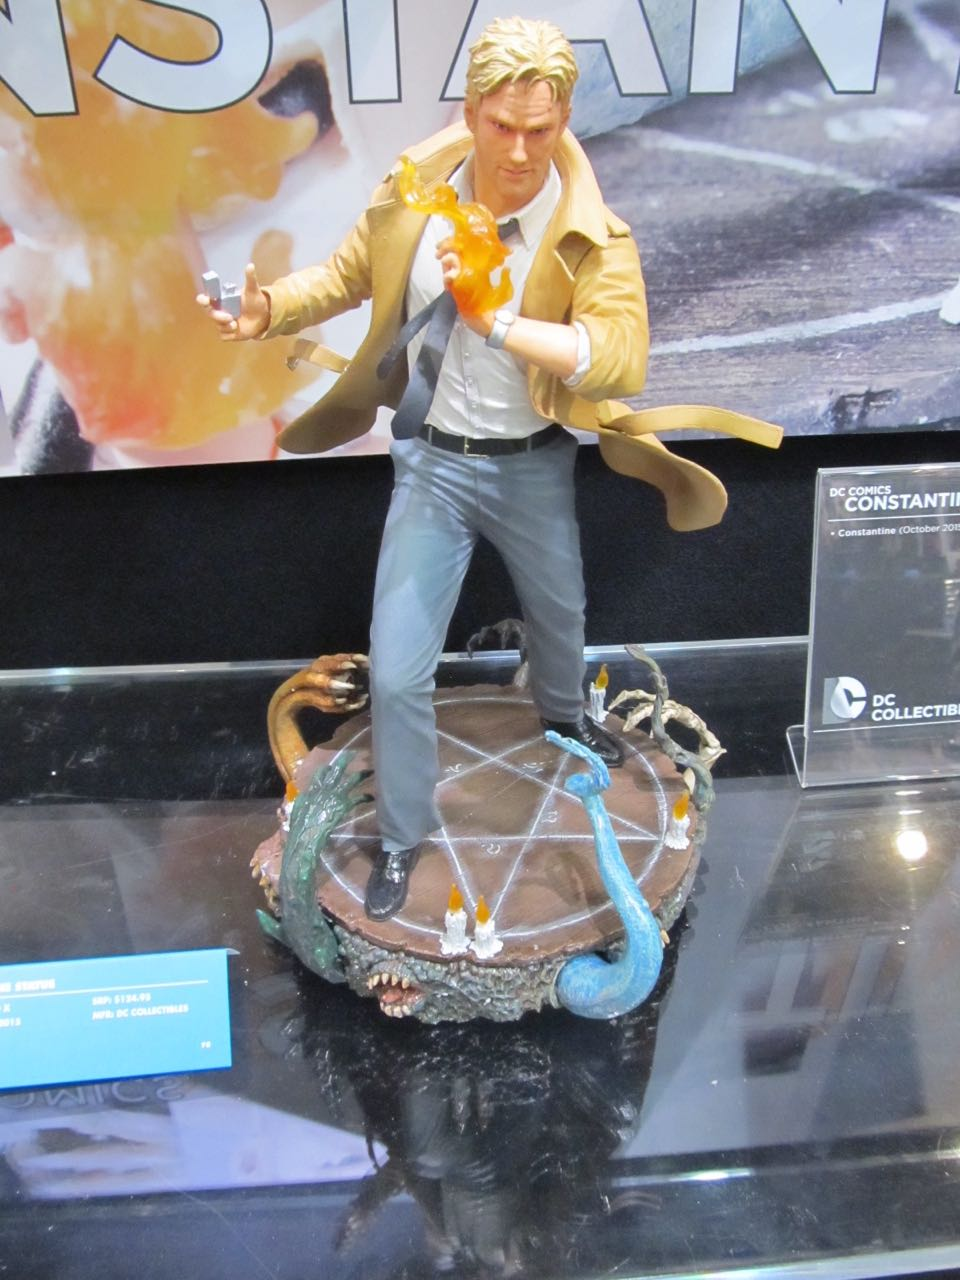 dc-collectibles-059